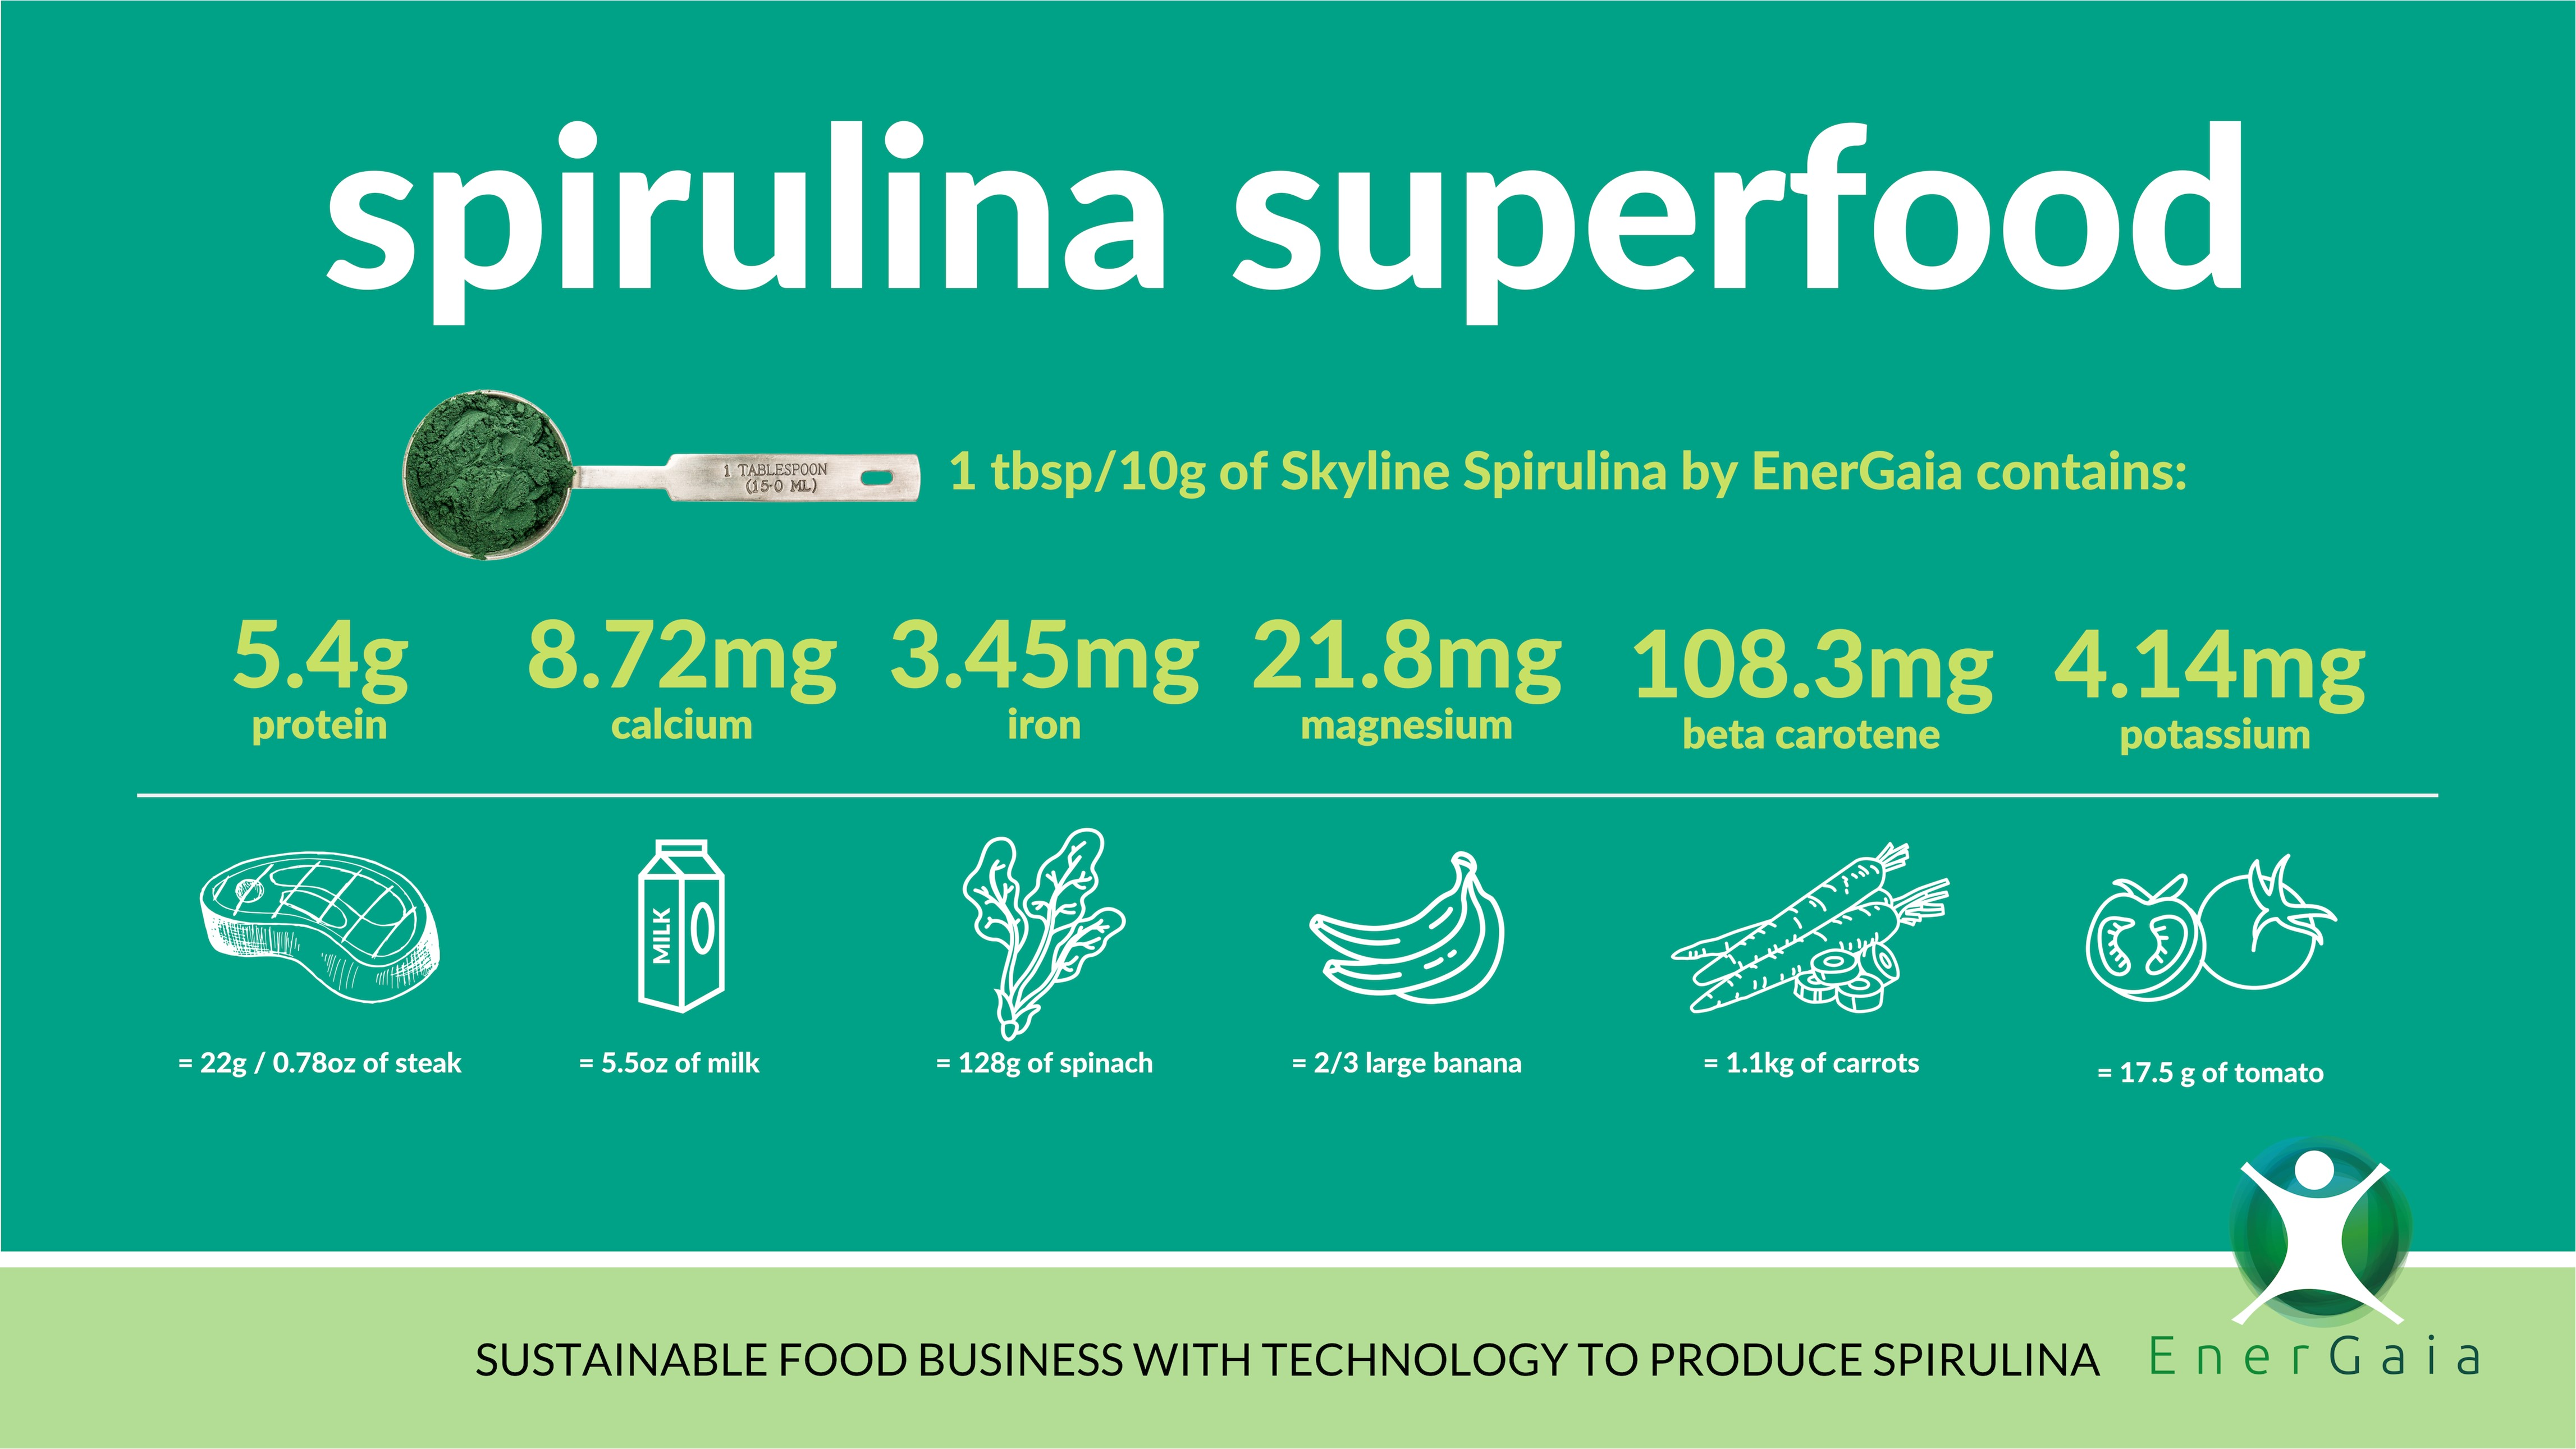 Skyline Spirulina as a Superfood